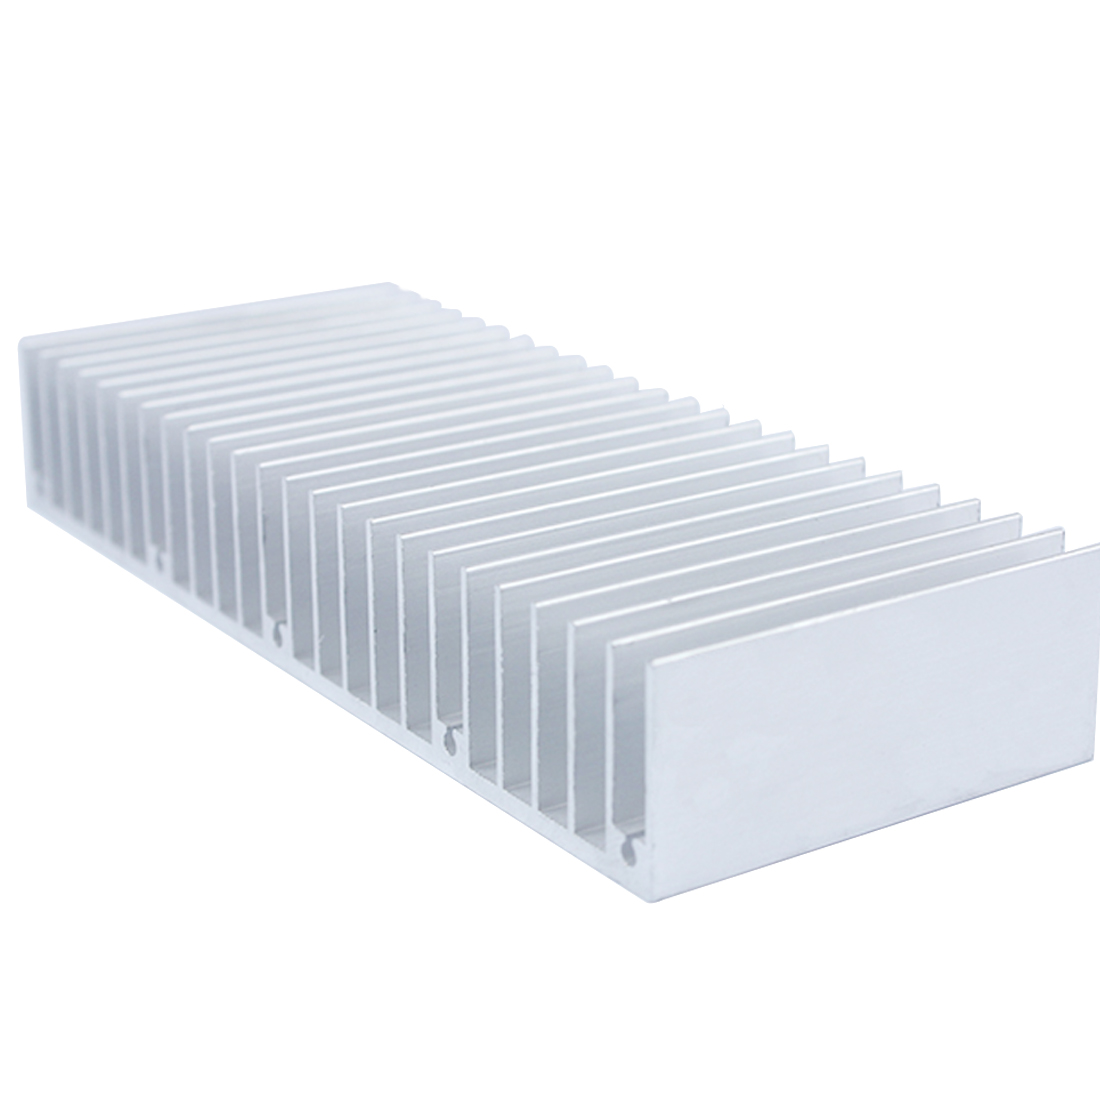 Etmakit Top Quality 150x60x25mm radiator Aluminum heatsink Extruded heat sink for LED Electronic heat dissipation cooling cooler 50pcs 8 8x8 8x5mm aluminum heatsink radiator cooling cooler for electronic chip ic ram led with thermal conductive tape